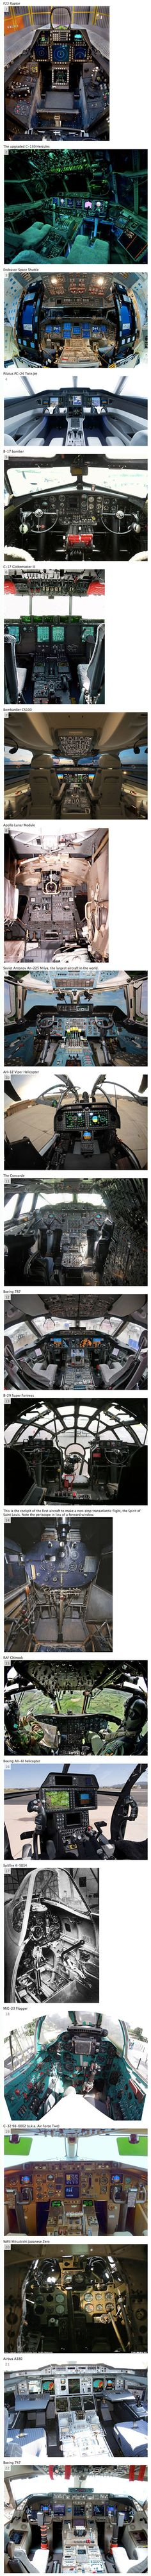 We have rounded up some fascinating images that will take you inside the cockpit of high-tech flying machines.